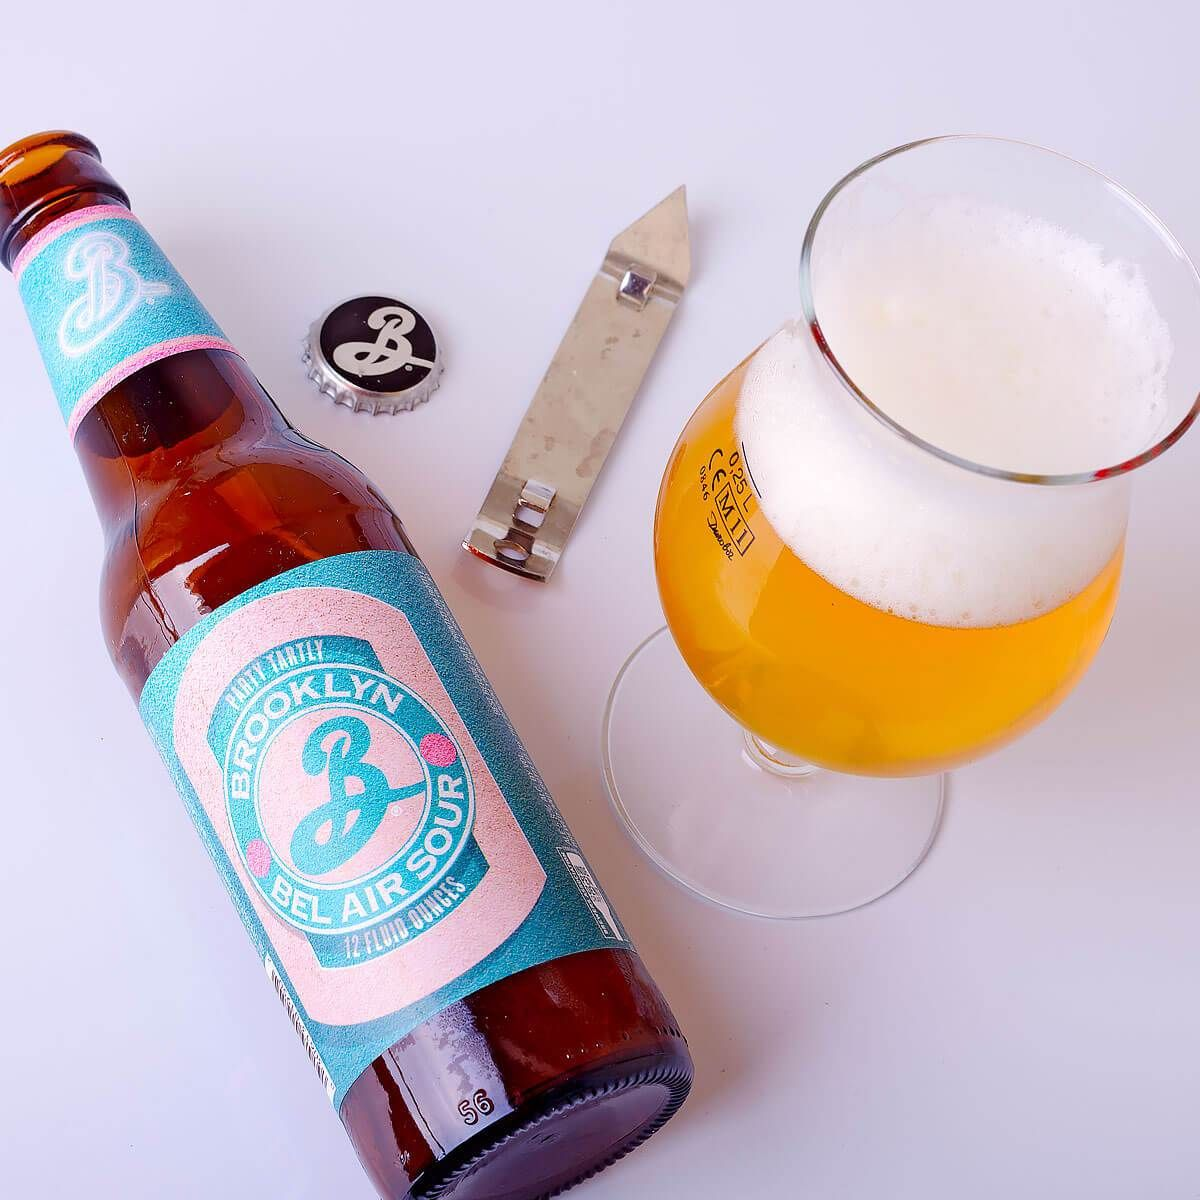 Bel Air Sour, an American Wild Ale by Brooklyn Brewery